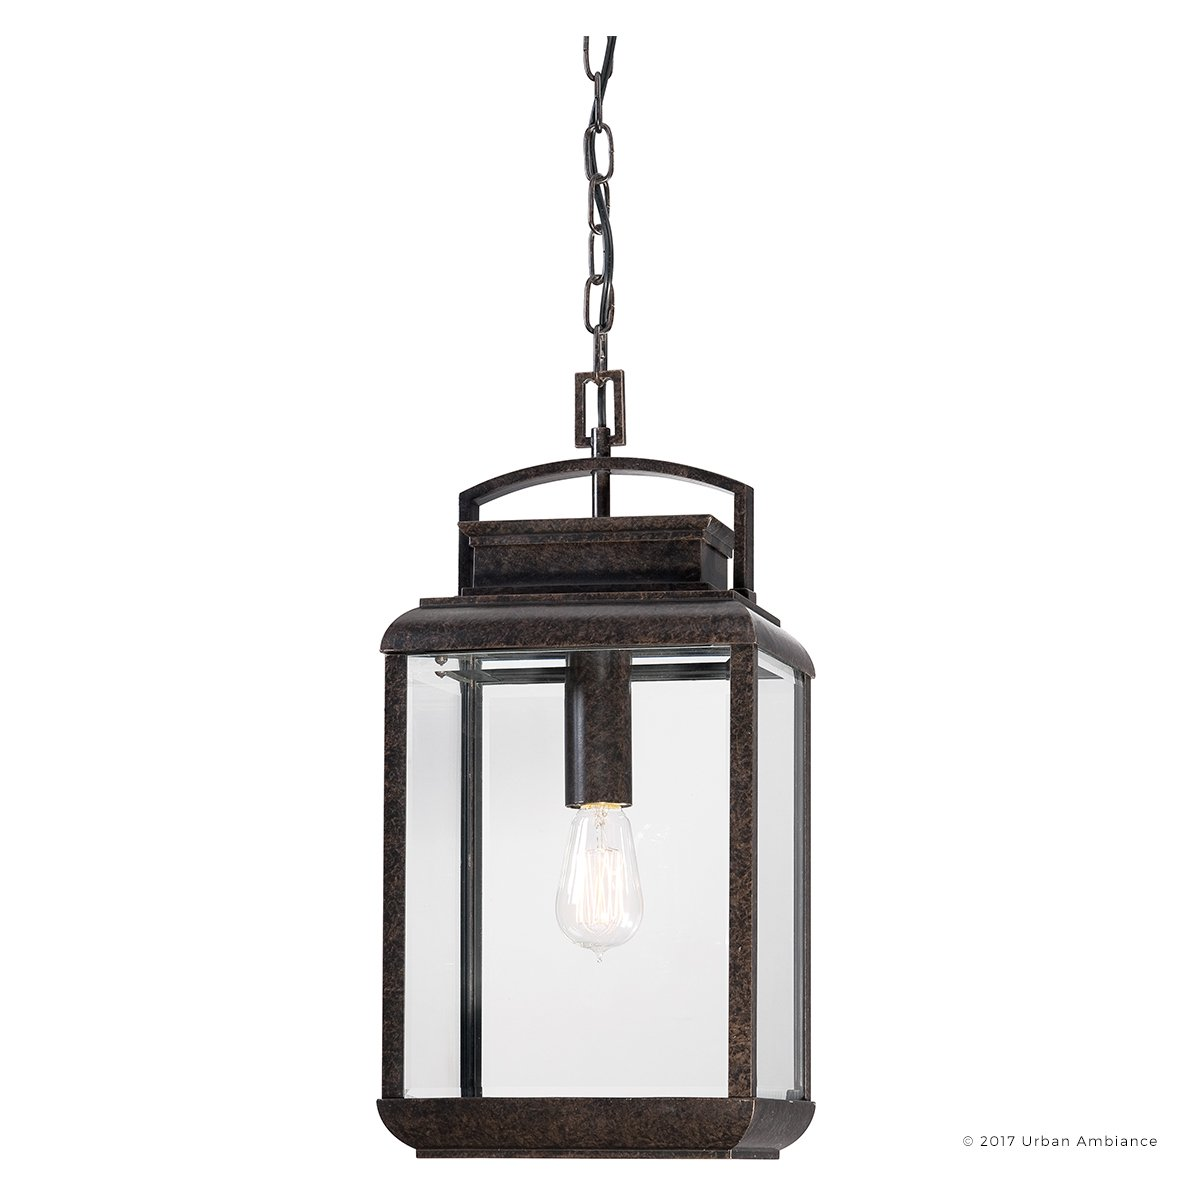 Luxury Craftsman Outdoor Pendant Light, Large Size: 21''H x 10''W, with Arts and Crafts Style Elements, Beautiful Royal Bronze Finish and Beveled Glass, Includes Edison Bulb, UQL1025 by Urban Ambiance